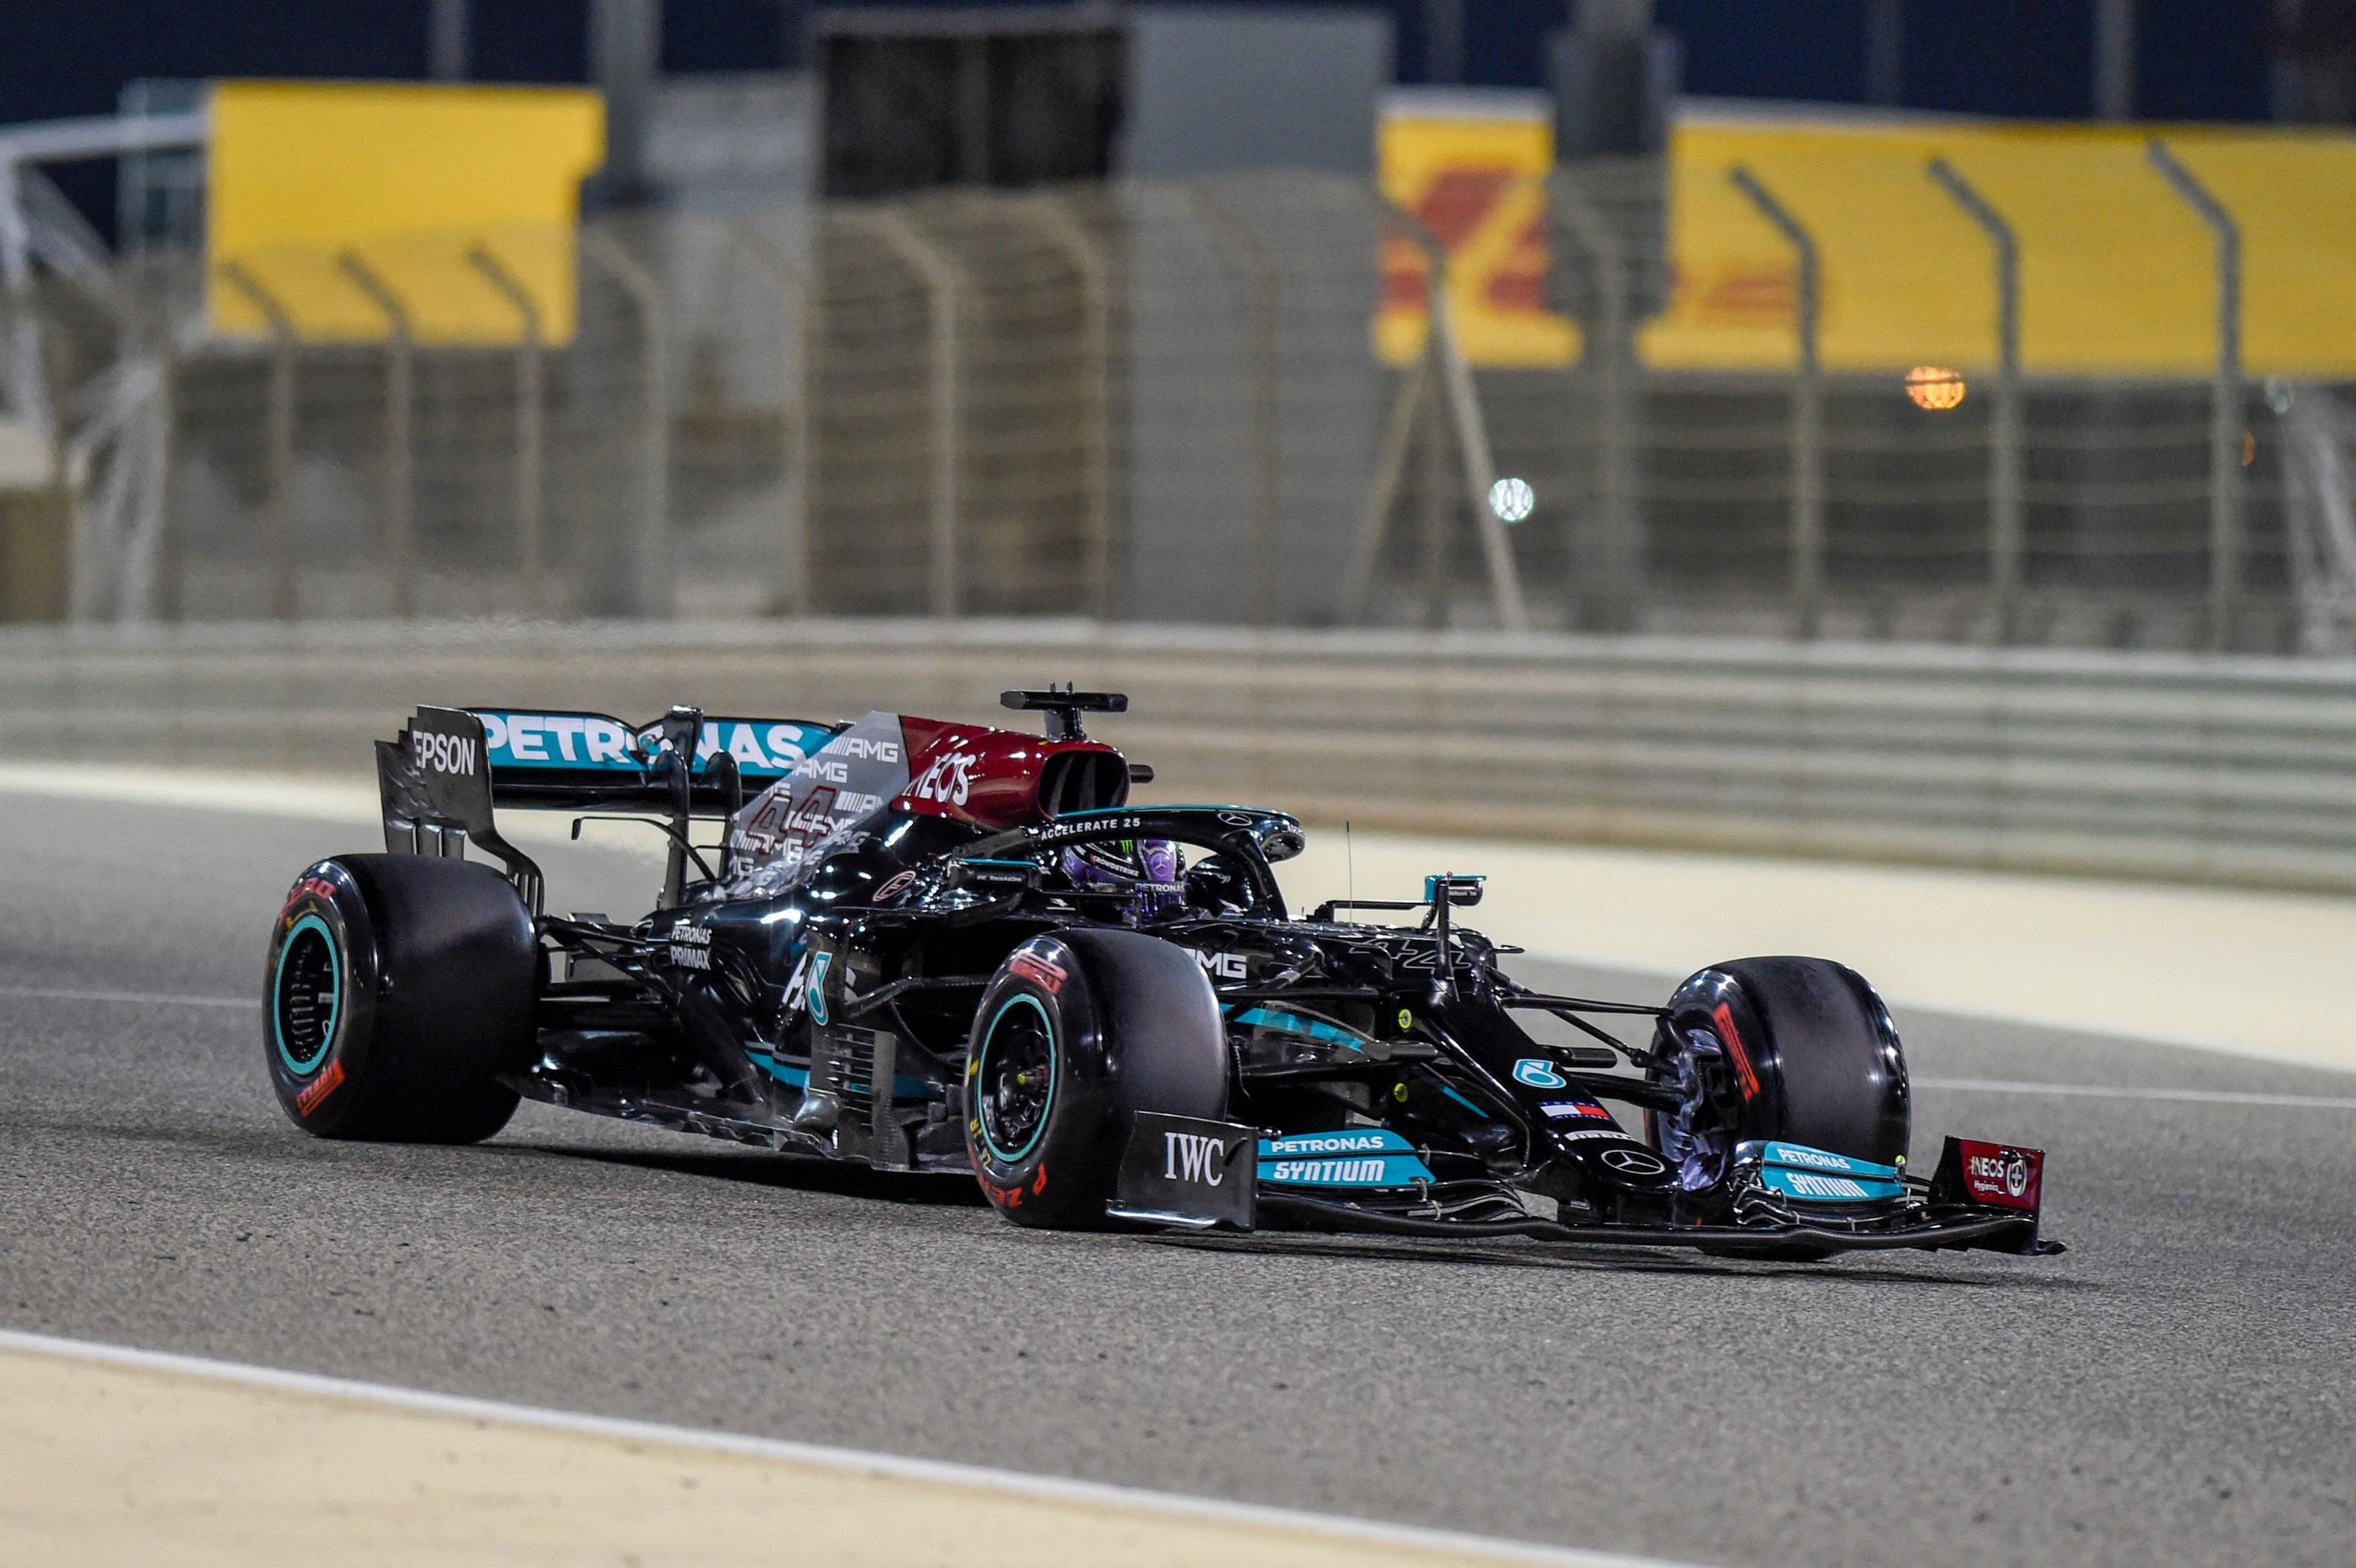 Formula 1 2022 Lineup Rumors Are Already Heating Up